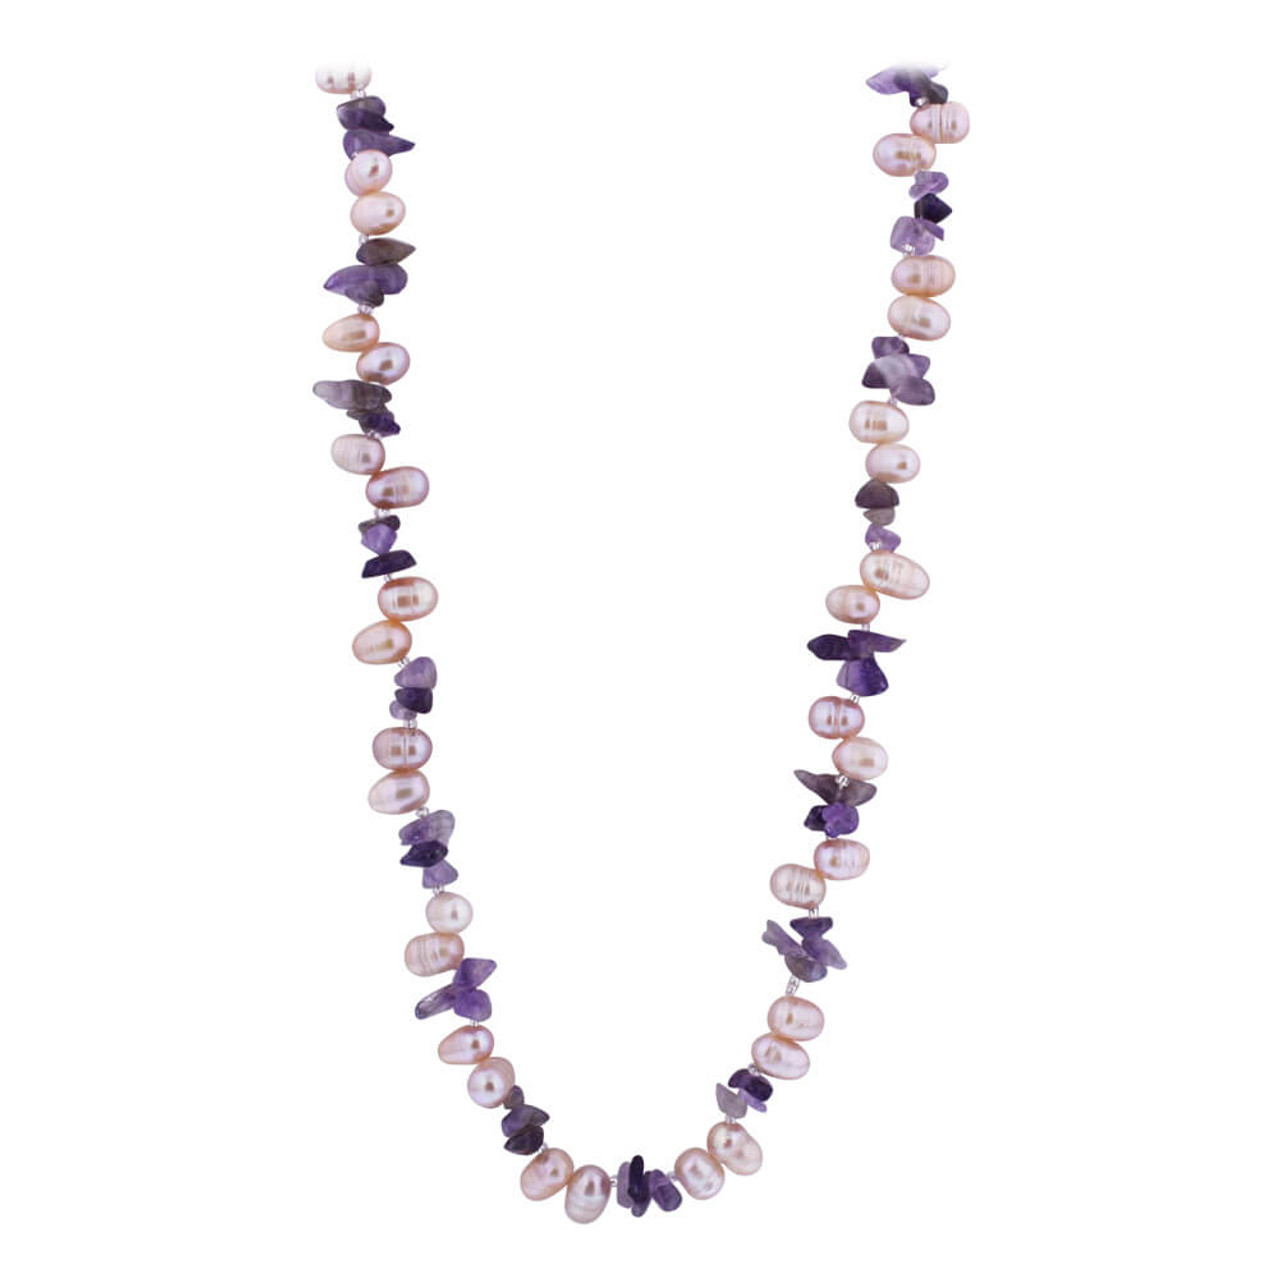 Nugget Pearl and Amethyst Beads Necklace